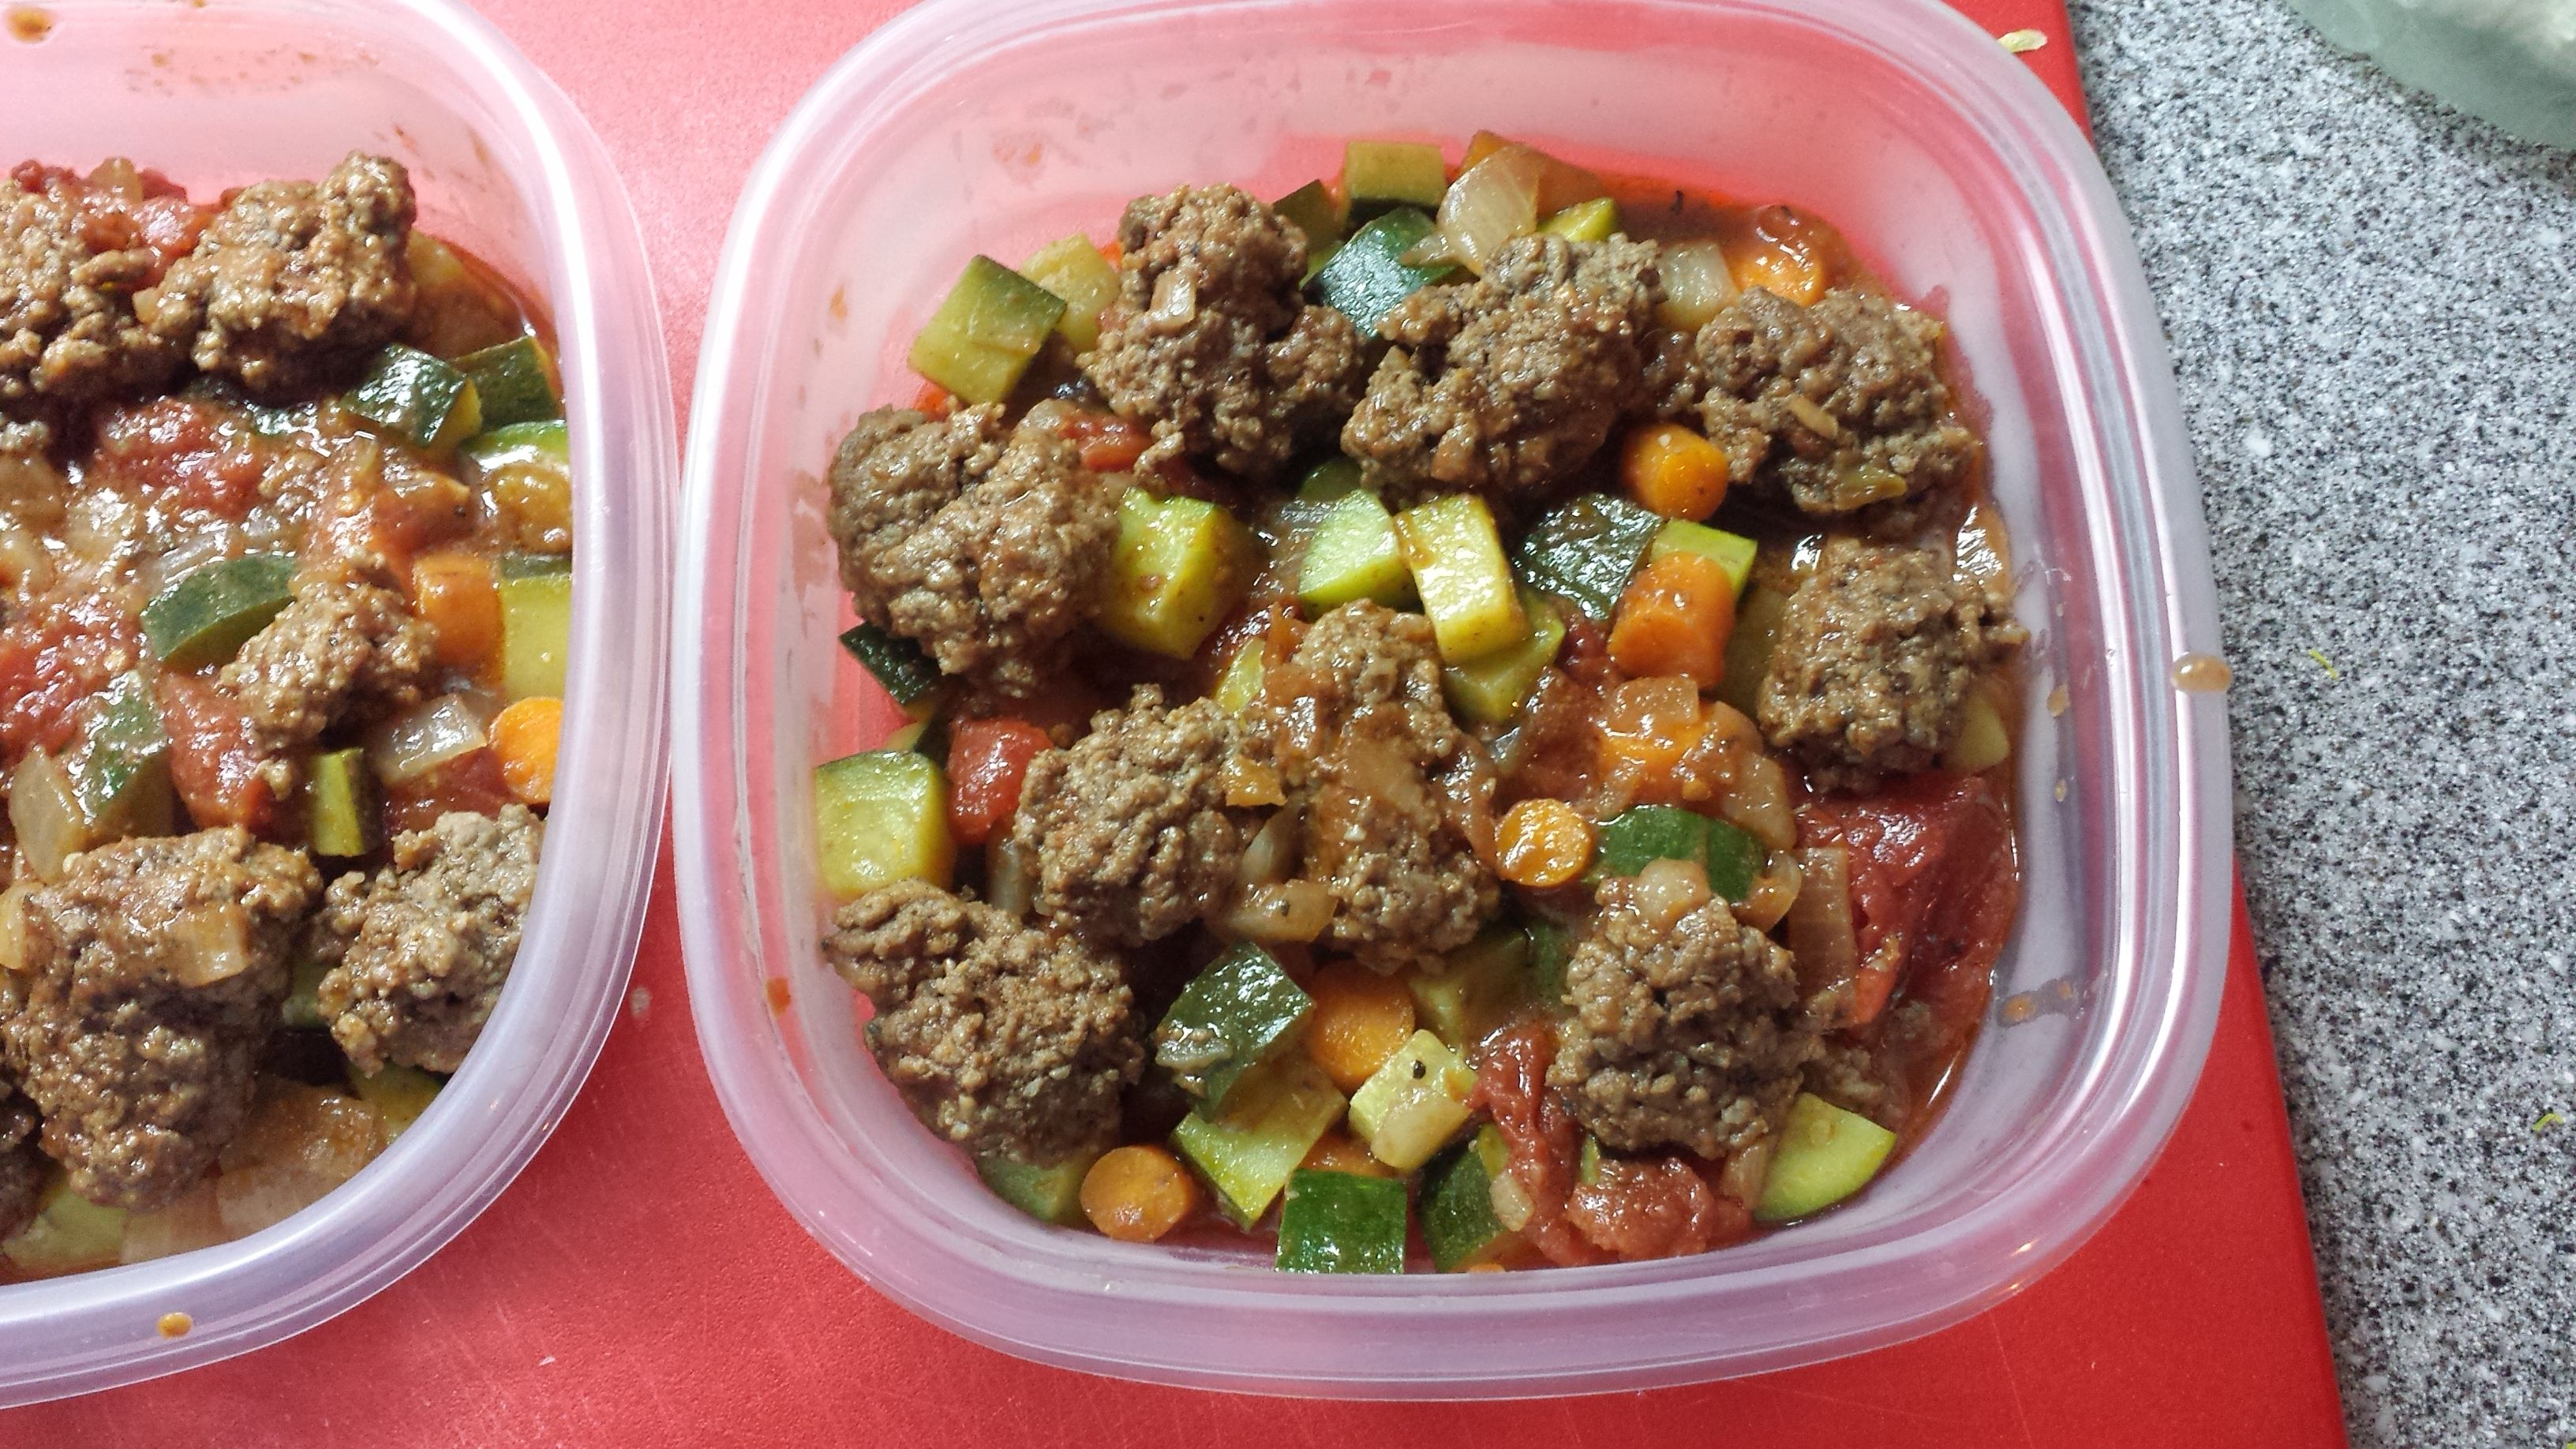 Ground Beef Zucchini Carrots Peppers And Tomatoes 21 Day Fix Meals 21 Day Fix Meal Plan 21 Day Fix Diet